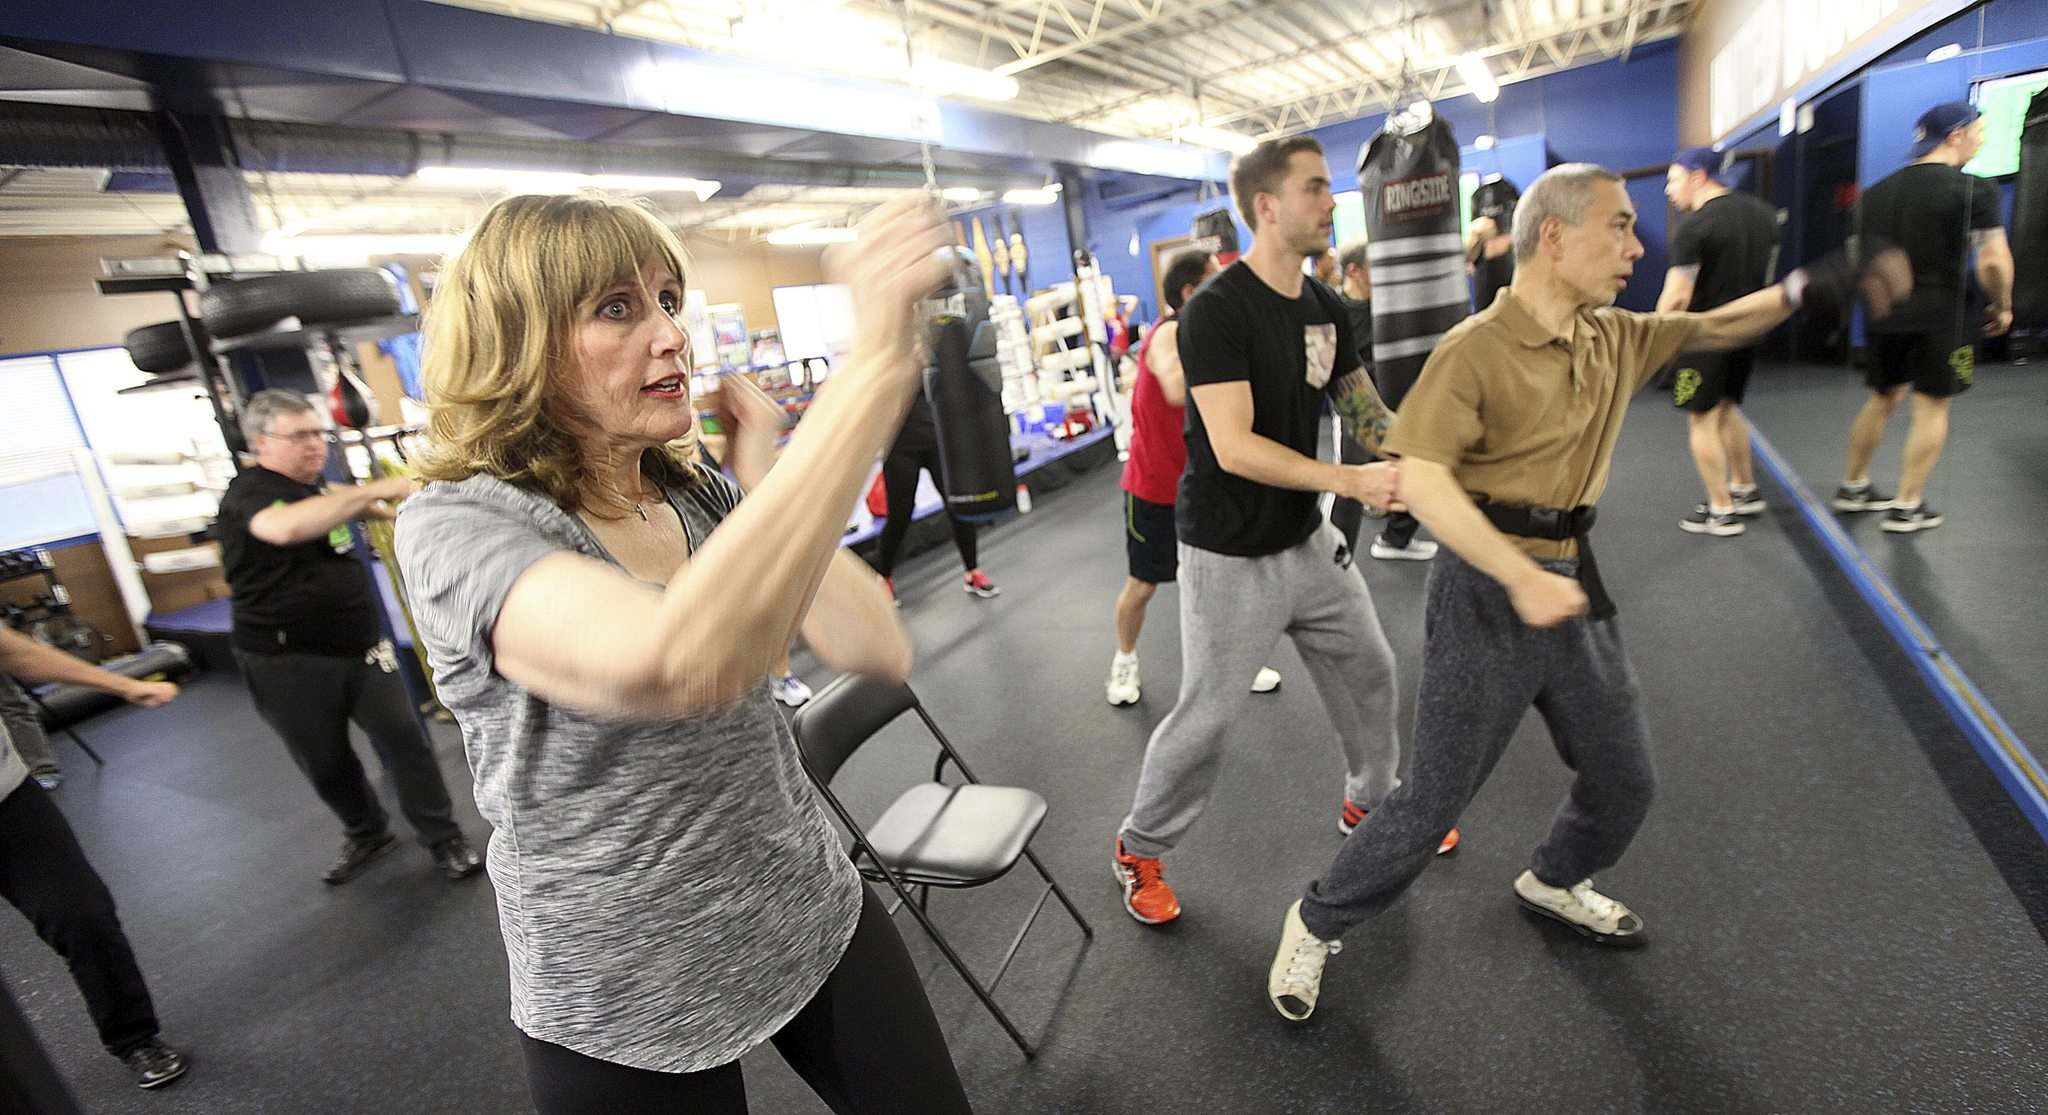 PHIL HOSSACK / WINNIPEG FREE PRESS</p><p>Francine Lee throws punches during a workout for &#34;Counter Punch&#34; a boxing program for Parkinson&#39;s patients.</p>